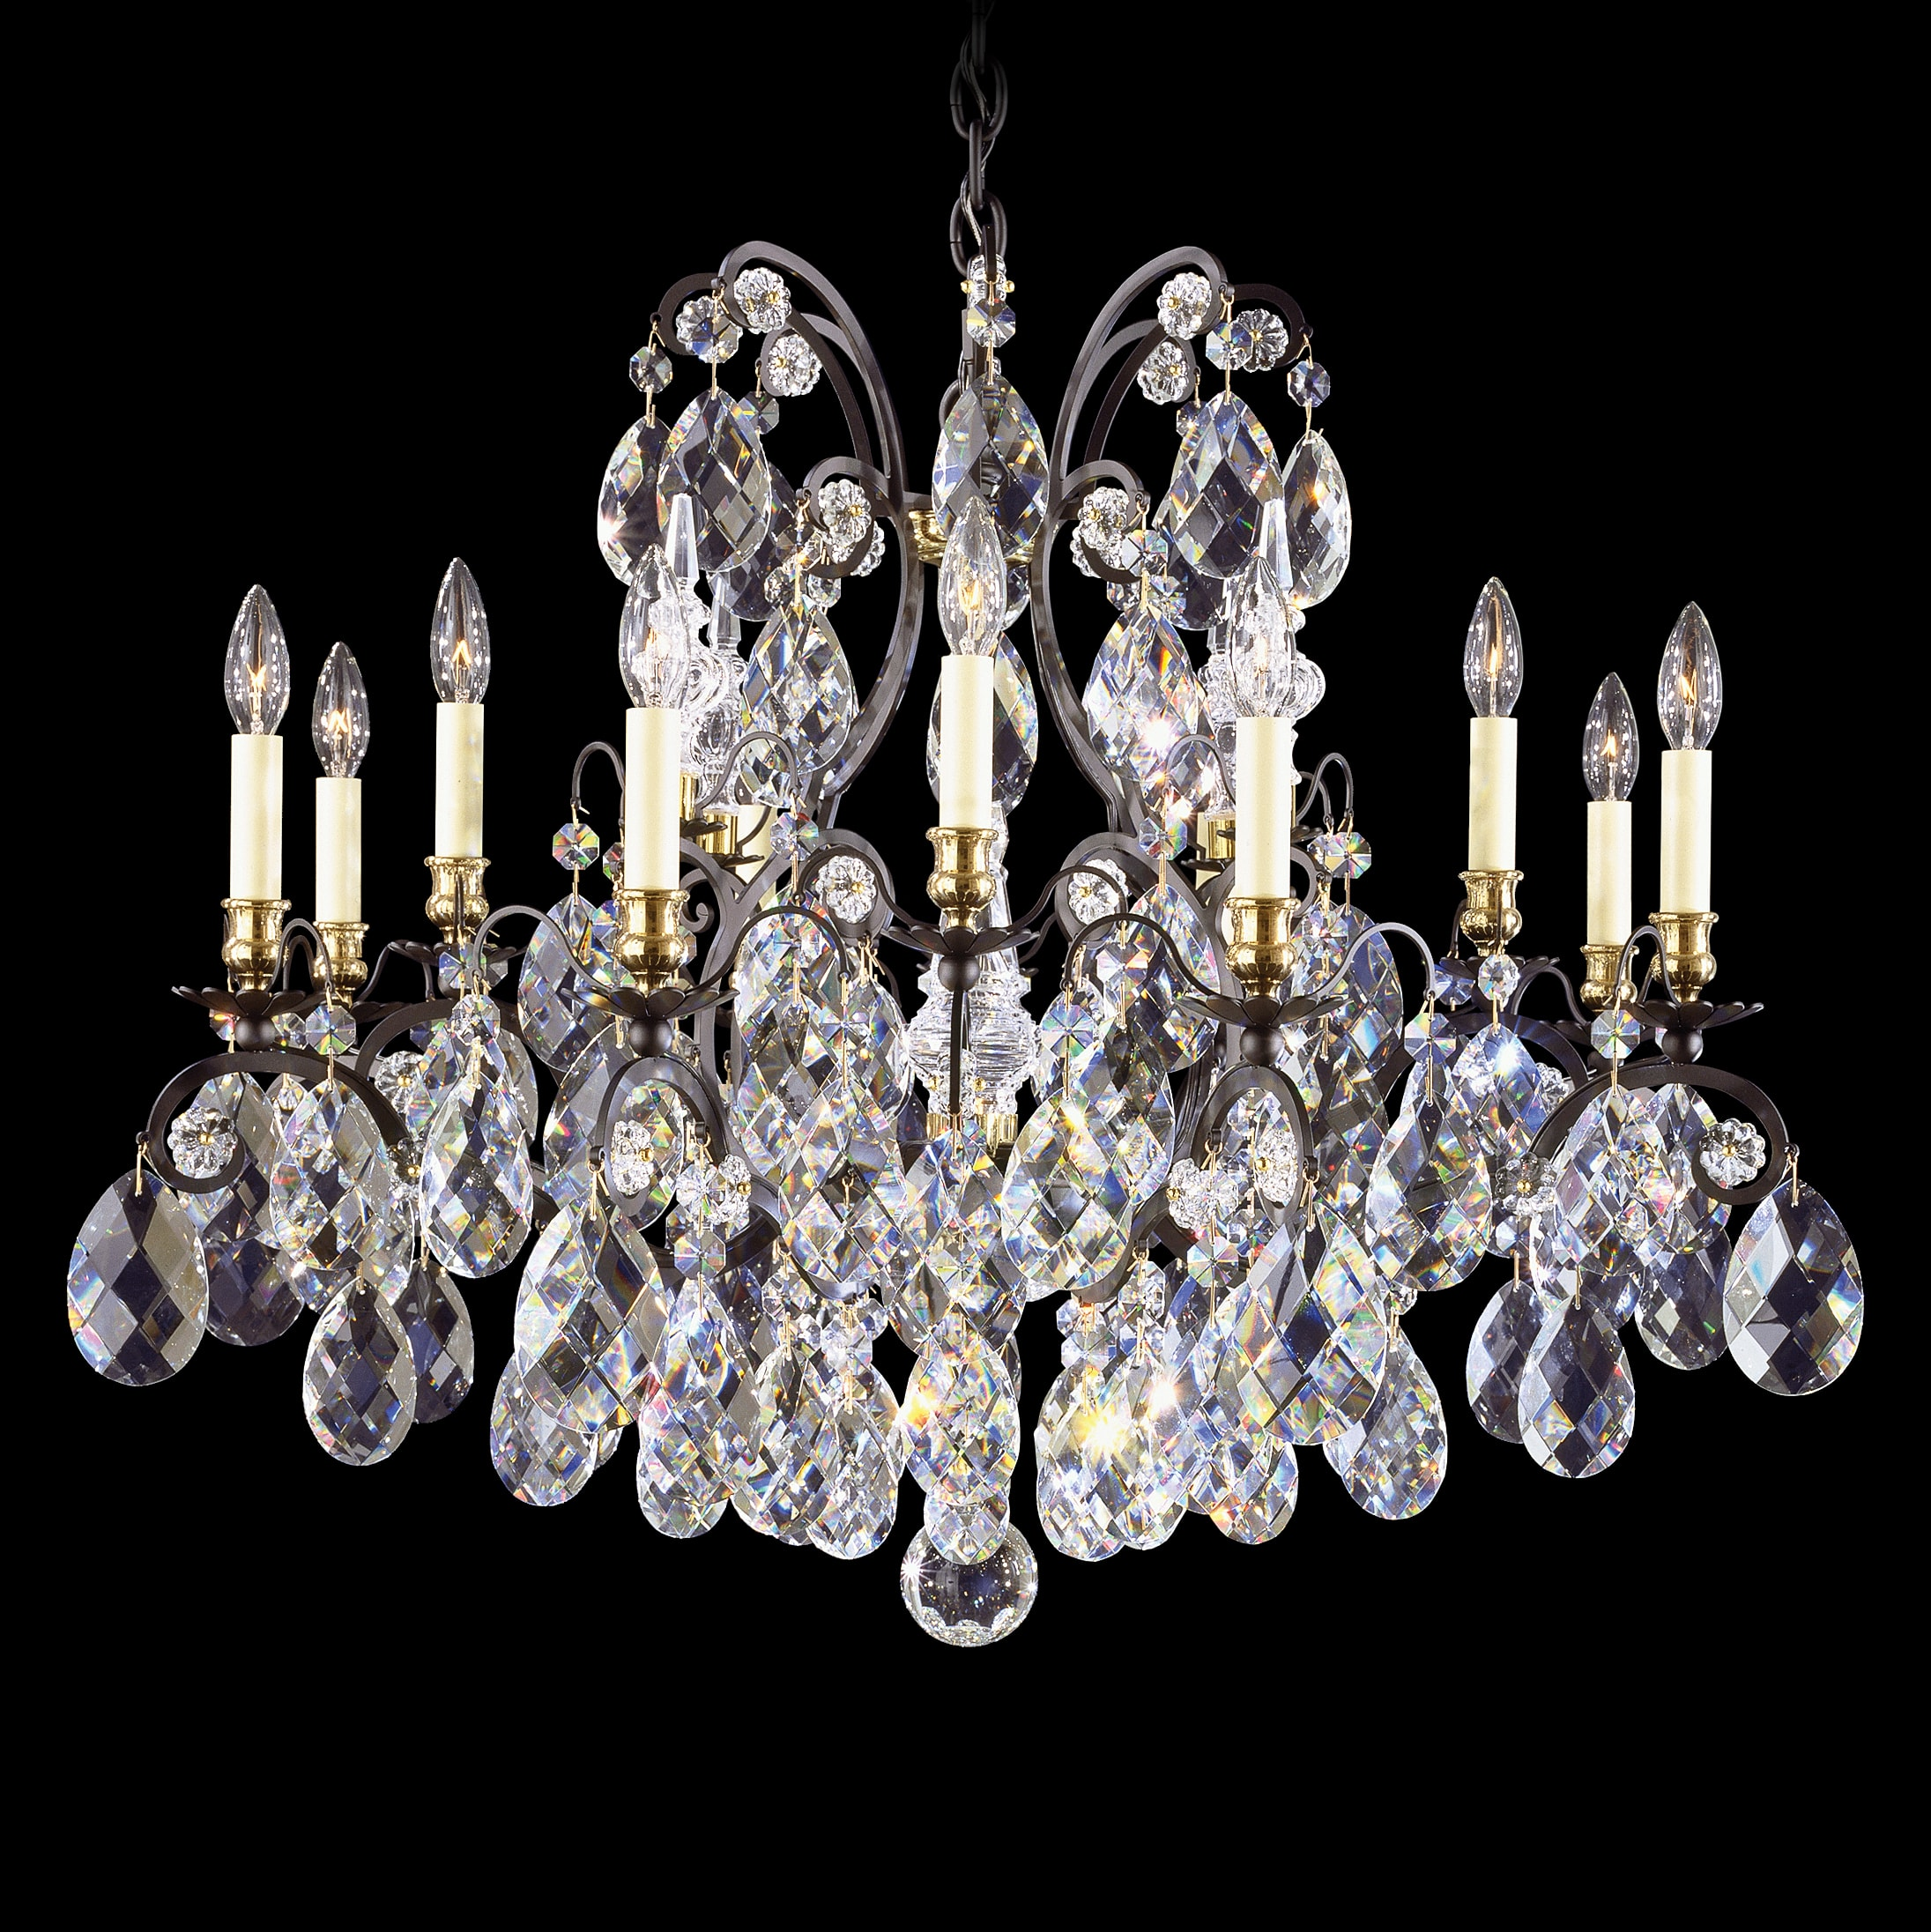 Schonbek 3790 51 Black Renaissance 13 Light 33 Wide Crystal Chandelier With Clear Swarovski Heritage Crystals Lightingshowplace Com